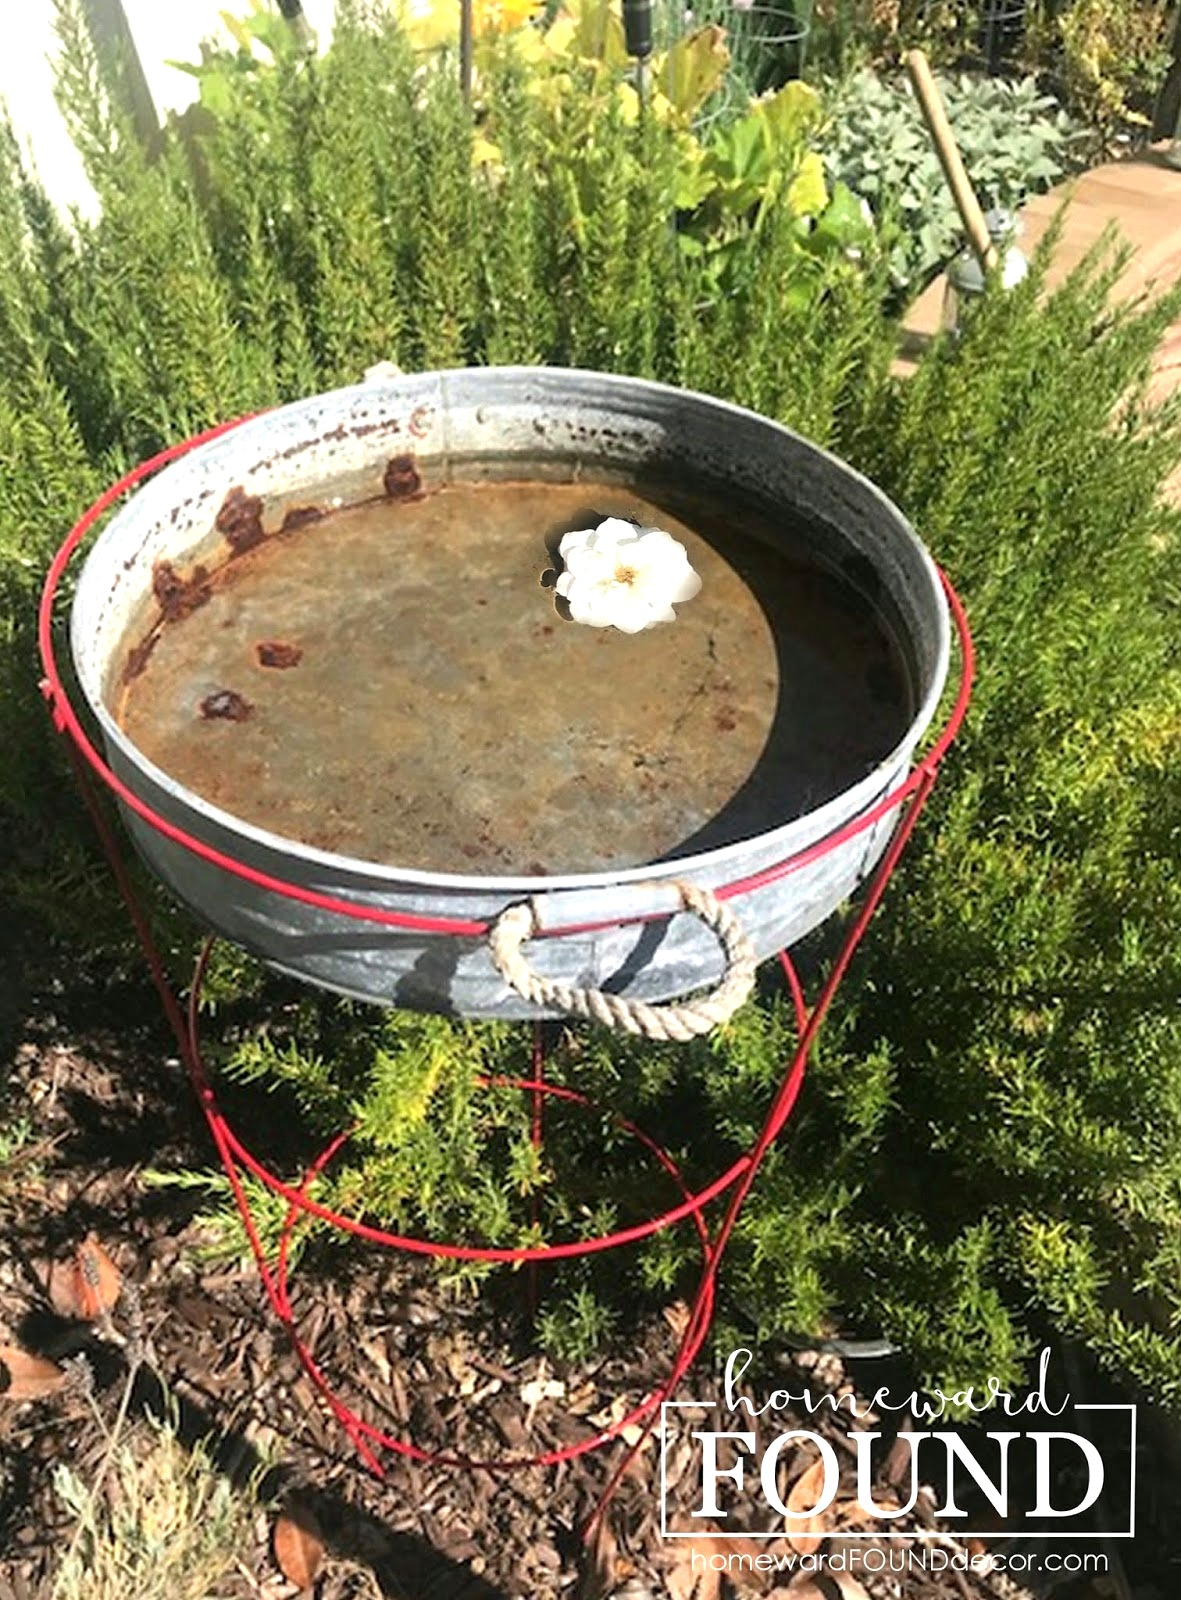 Tub and tomato cage birdbath by Homeward Found, featured on DIY Salvaged Junk Projects 537 on Funky Junk!